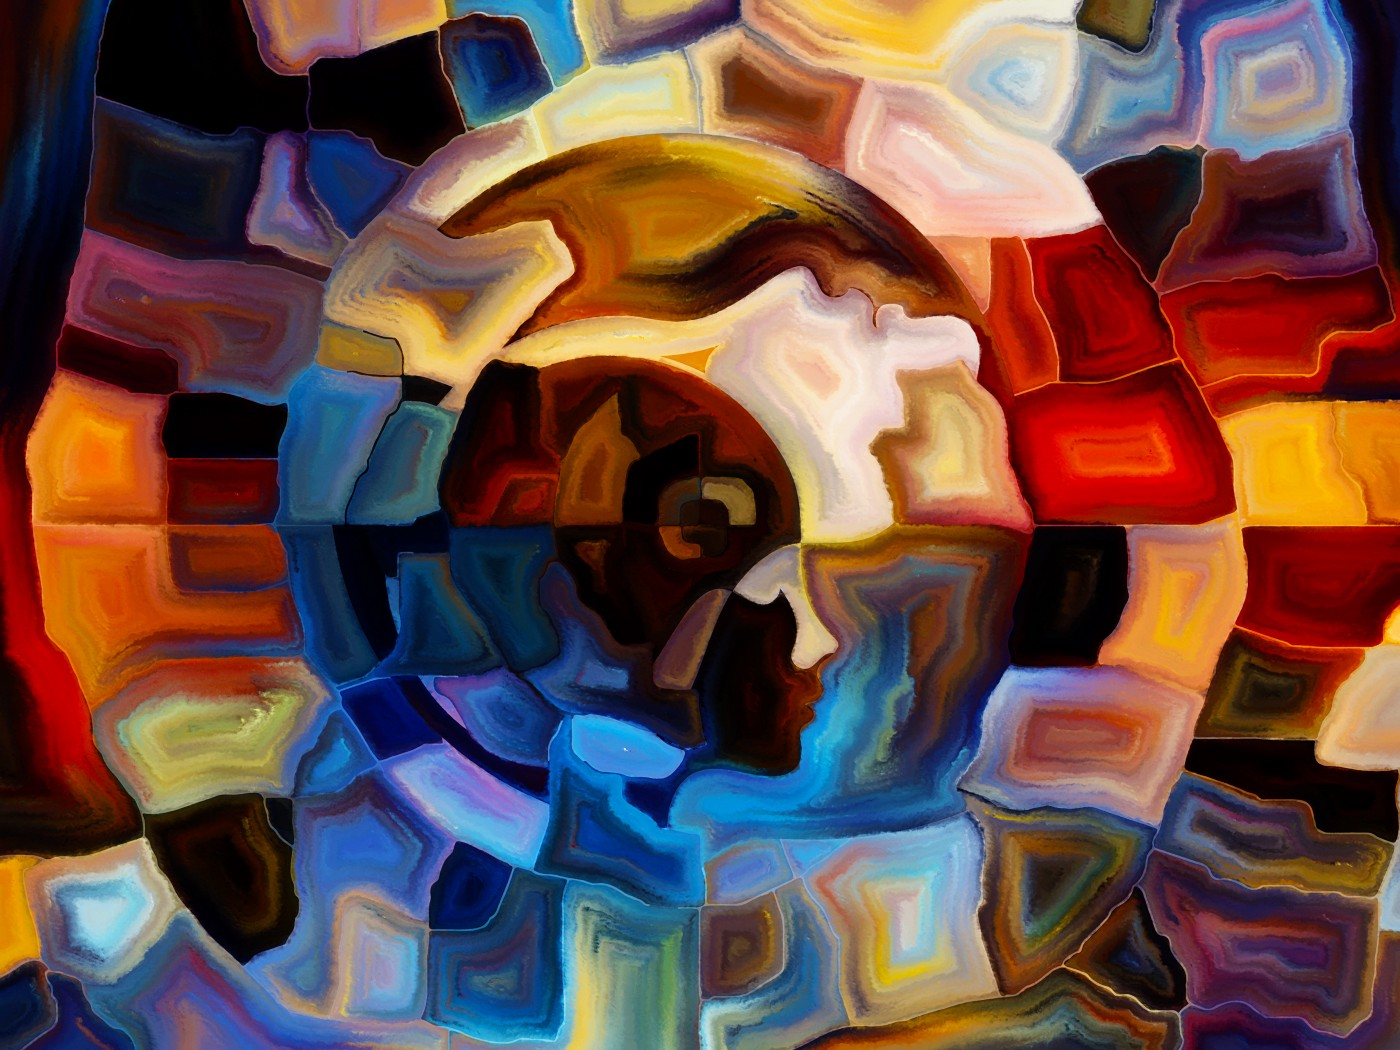 Human head within a colorful abstract image.